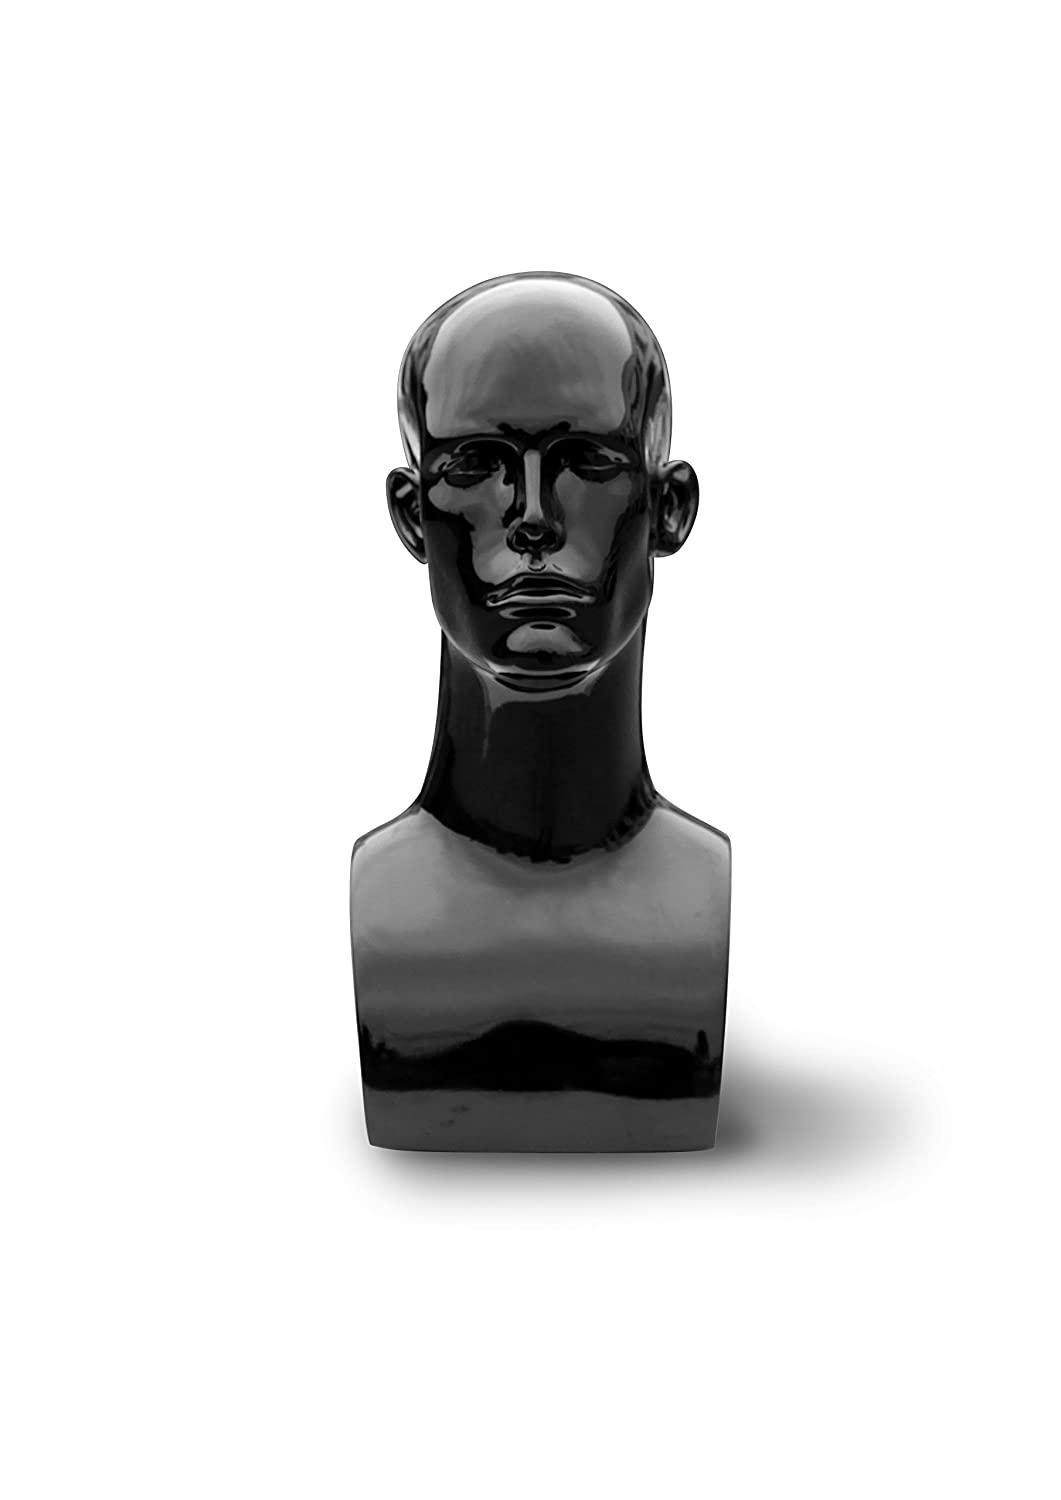 AMKO PDHA-MG1 Male Mannequin Head, 17 1/4' Height, Lightweight, Surprisingly Strong, Material, Durable, Perfect Display, Quality Plastic, Glossy Black Finish, Damage Resistant 17 1/4 Height Amko Display